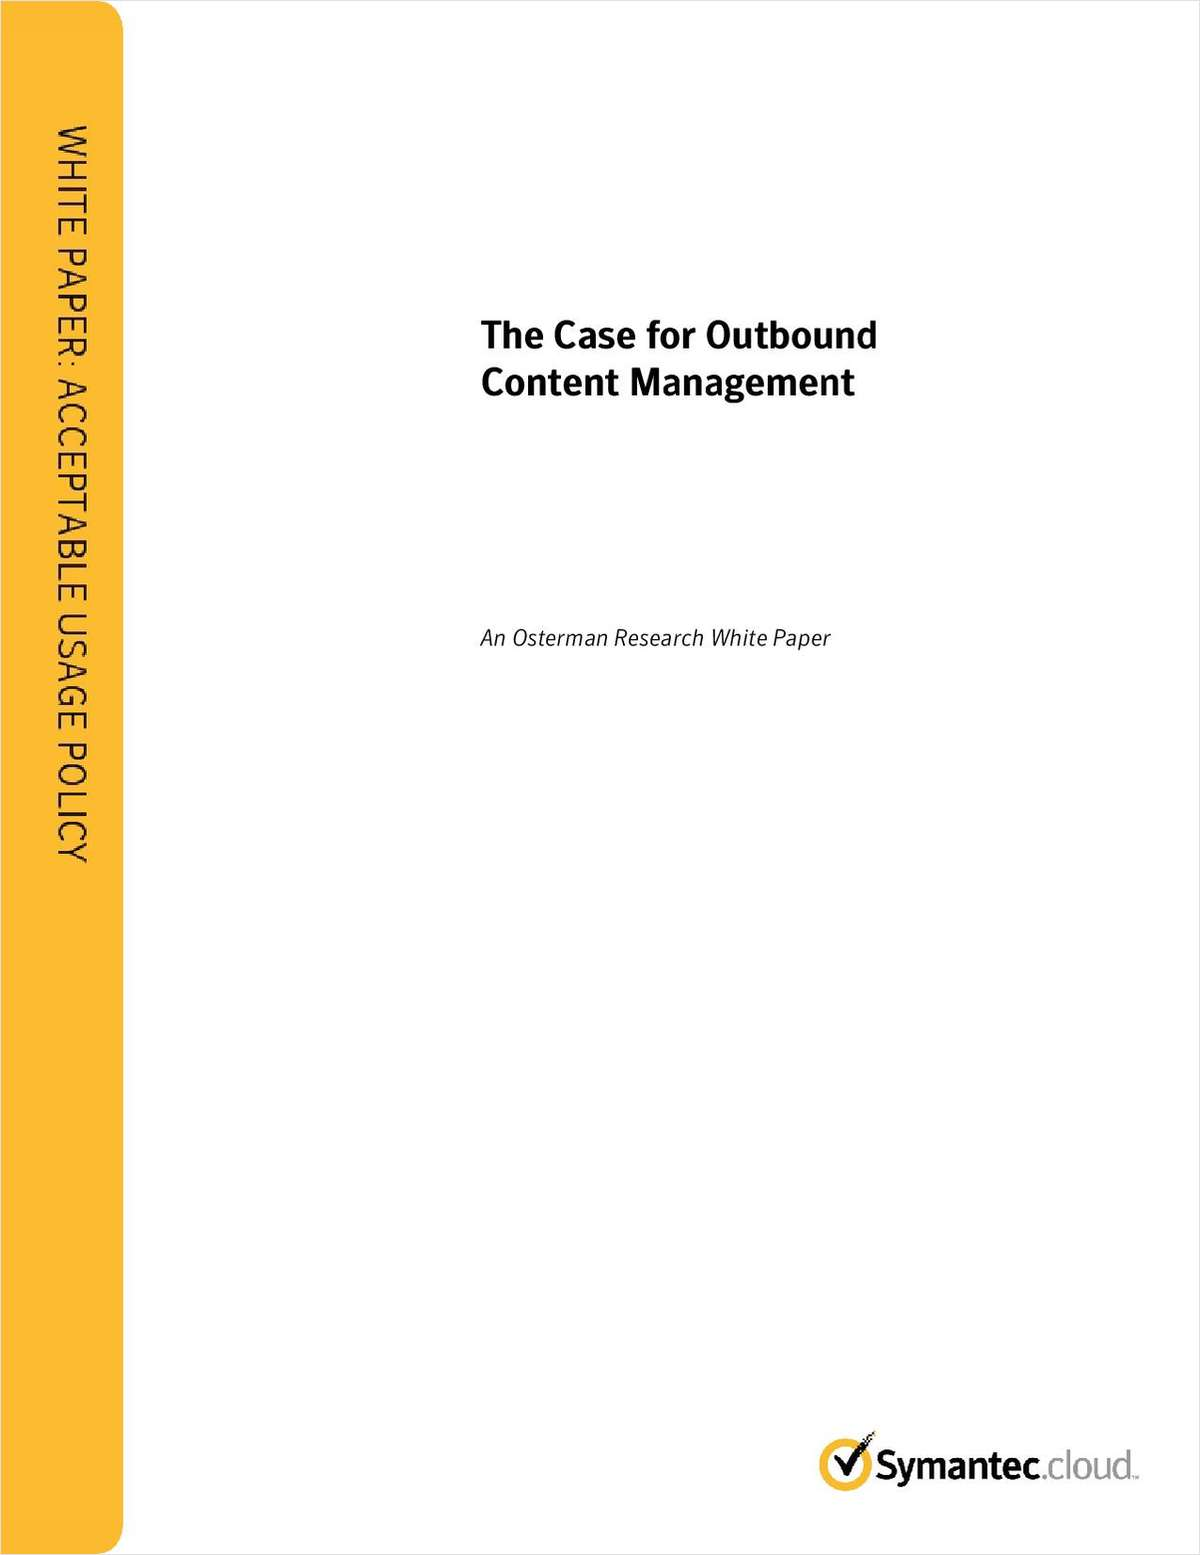 The Case for Outbound Content Management